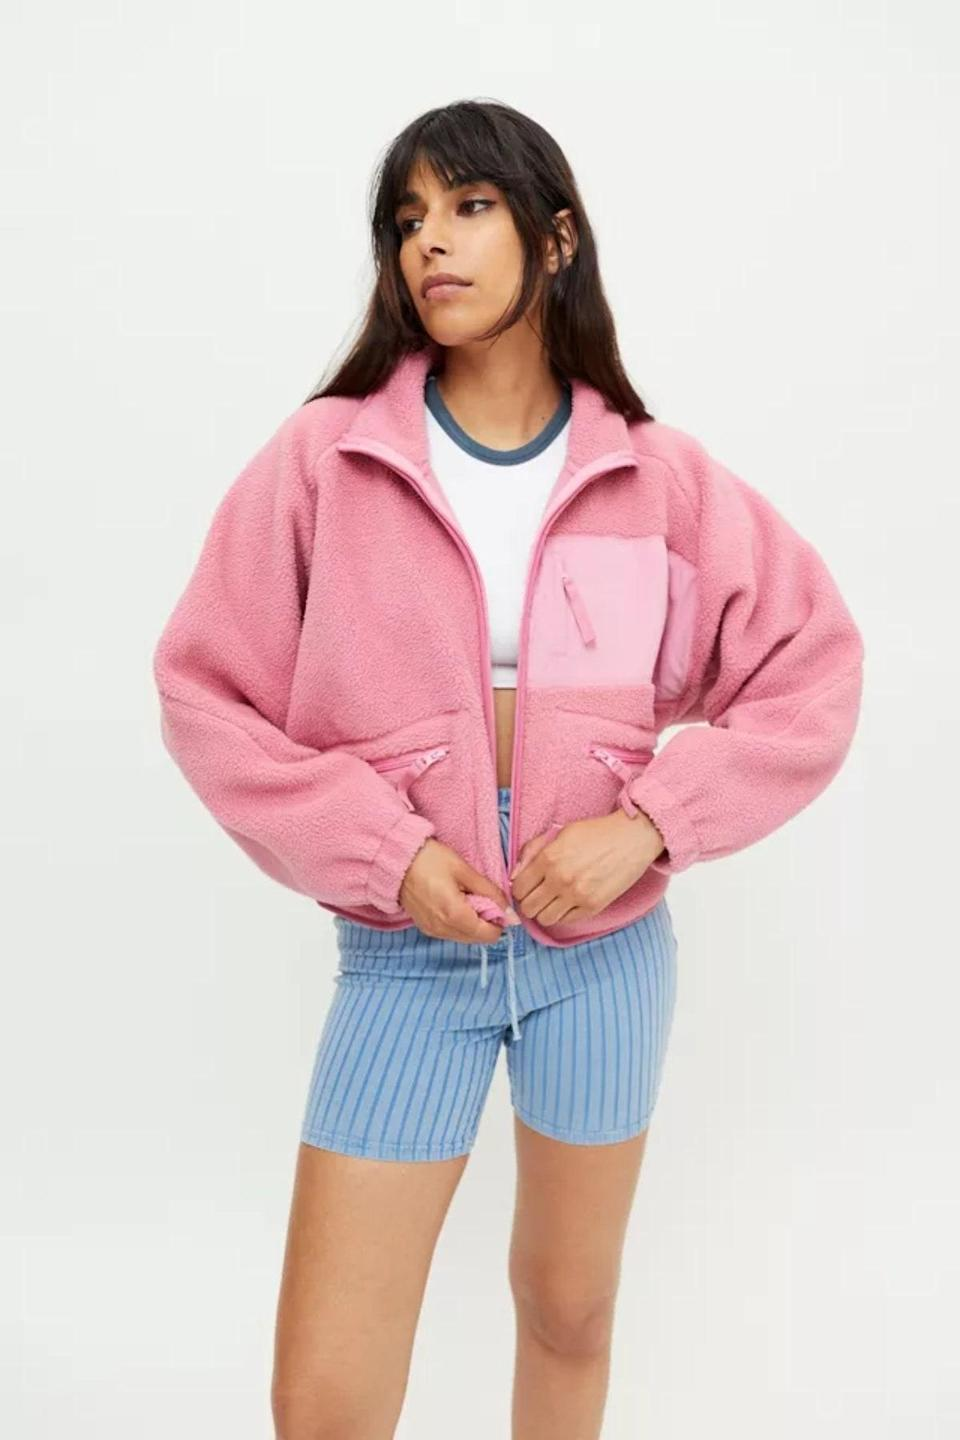 """A fleece sweater is a staple, and this Free People one comes in the dreamiest pink shade. $89, Urban Outfitters. <a href=""""https://www.urbanoutfitters.com/shop/uo-stormy-fleece-jacket?color=066&type=REGULAR&quantity=1"""" rel=""""nofollow noopener"""" target=""""_blank"""" data-ylk=""""slk:Get it now!"""" class=""""link rapid-noclick-resp"""">Get it now!</a>"""